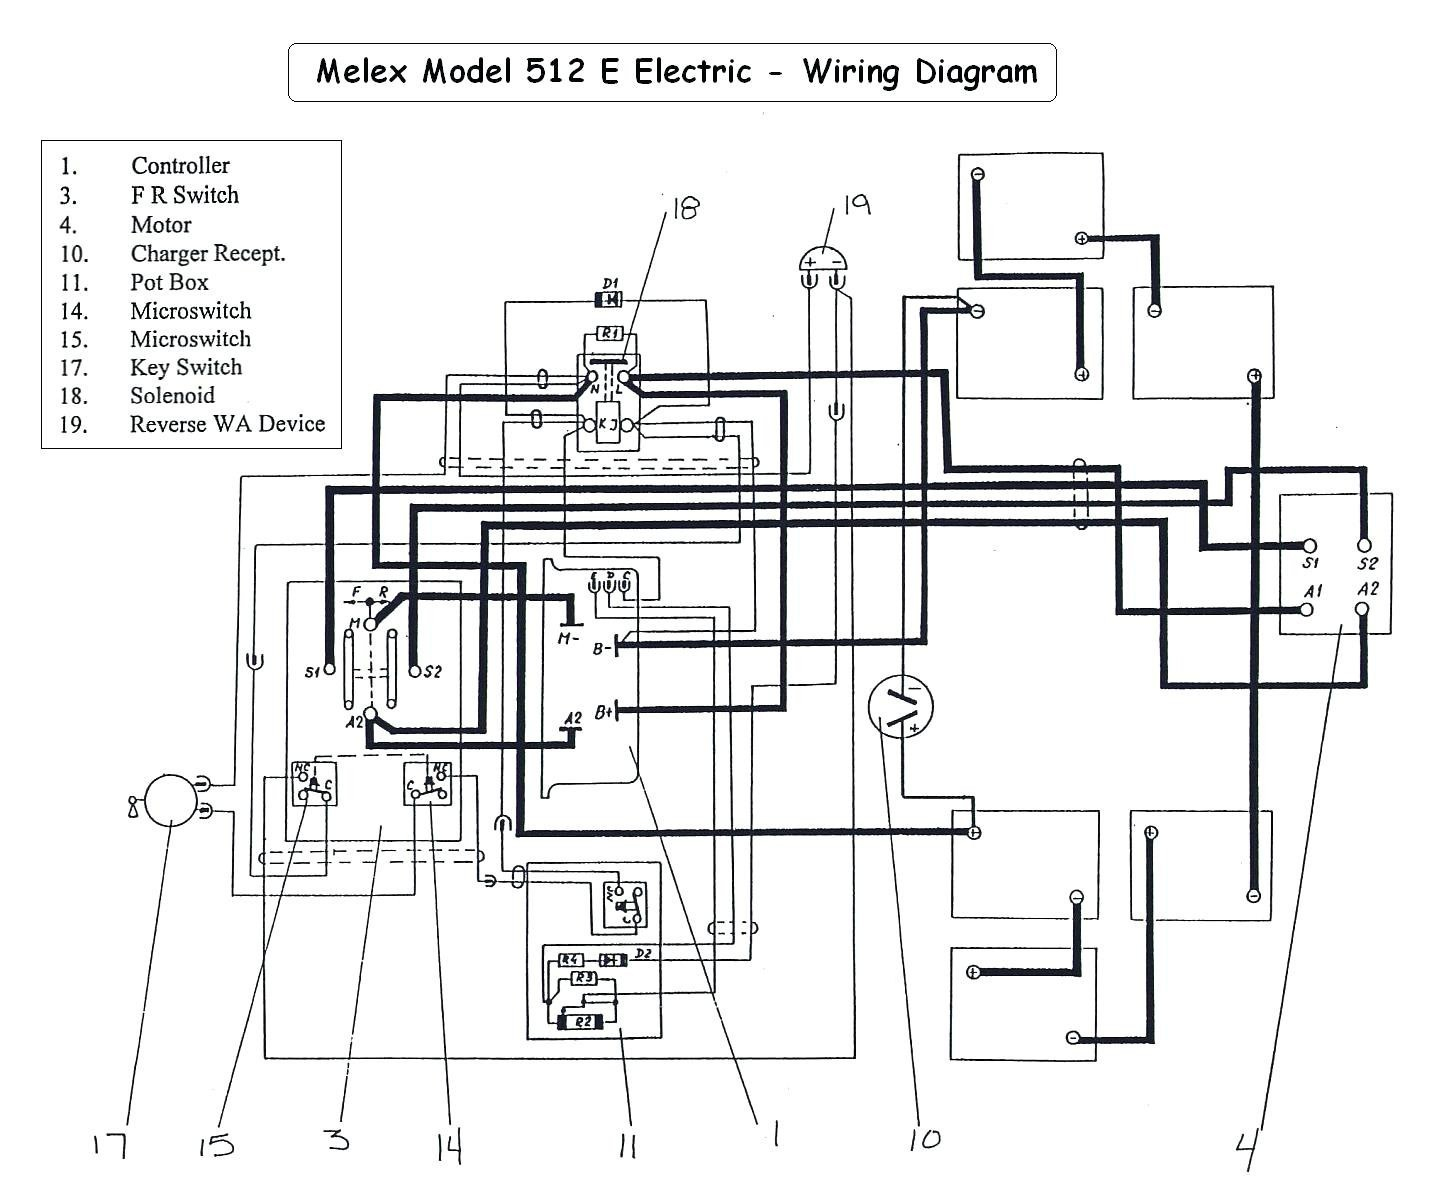 yamaha g1 wiring harness diagram owner manual \u0026 wiring diagram Yamaha Golf Cart Battery Wiring